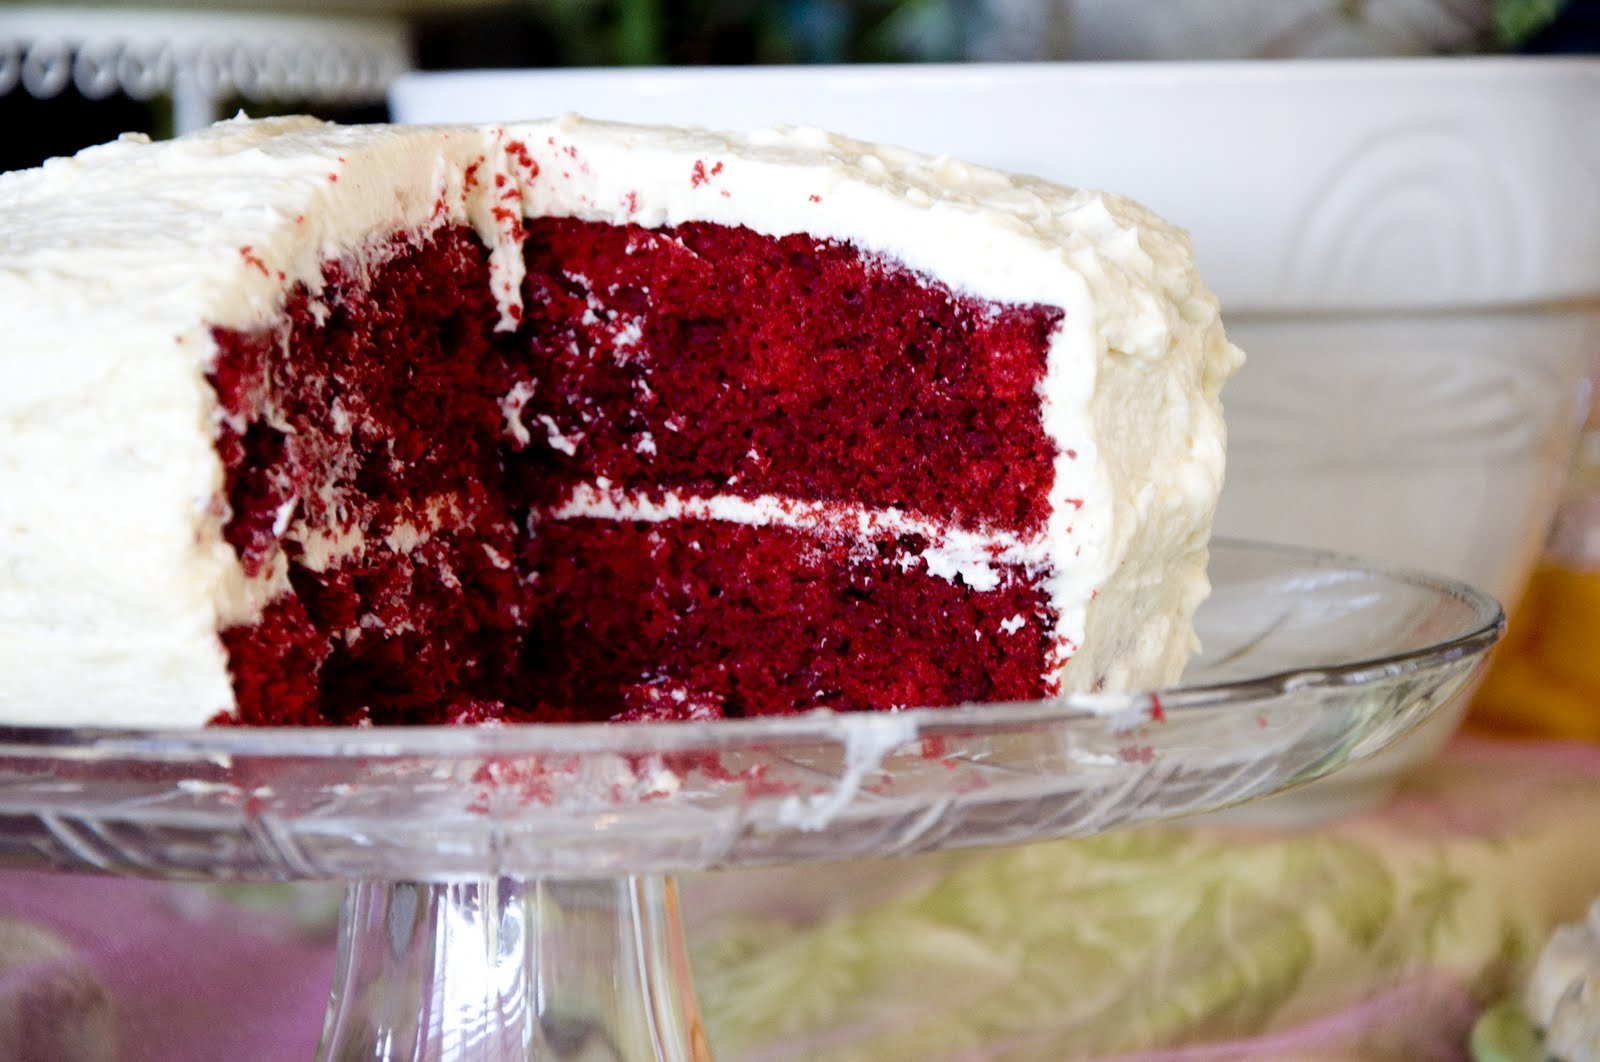 ... and when it comes to cakes my favorite is red velvet i nearly eat red